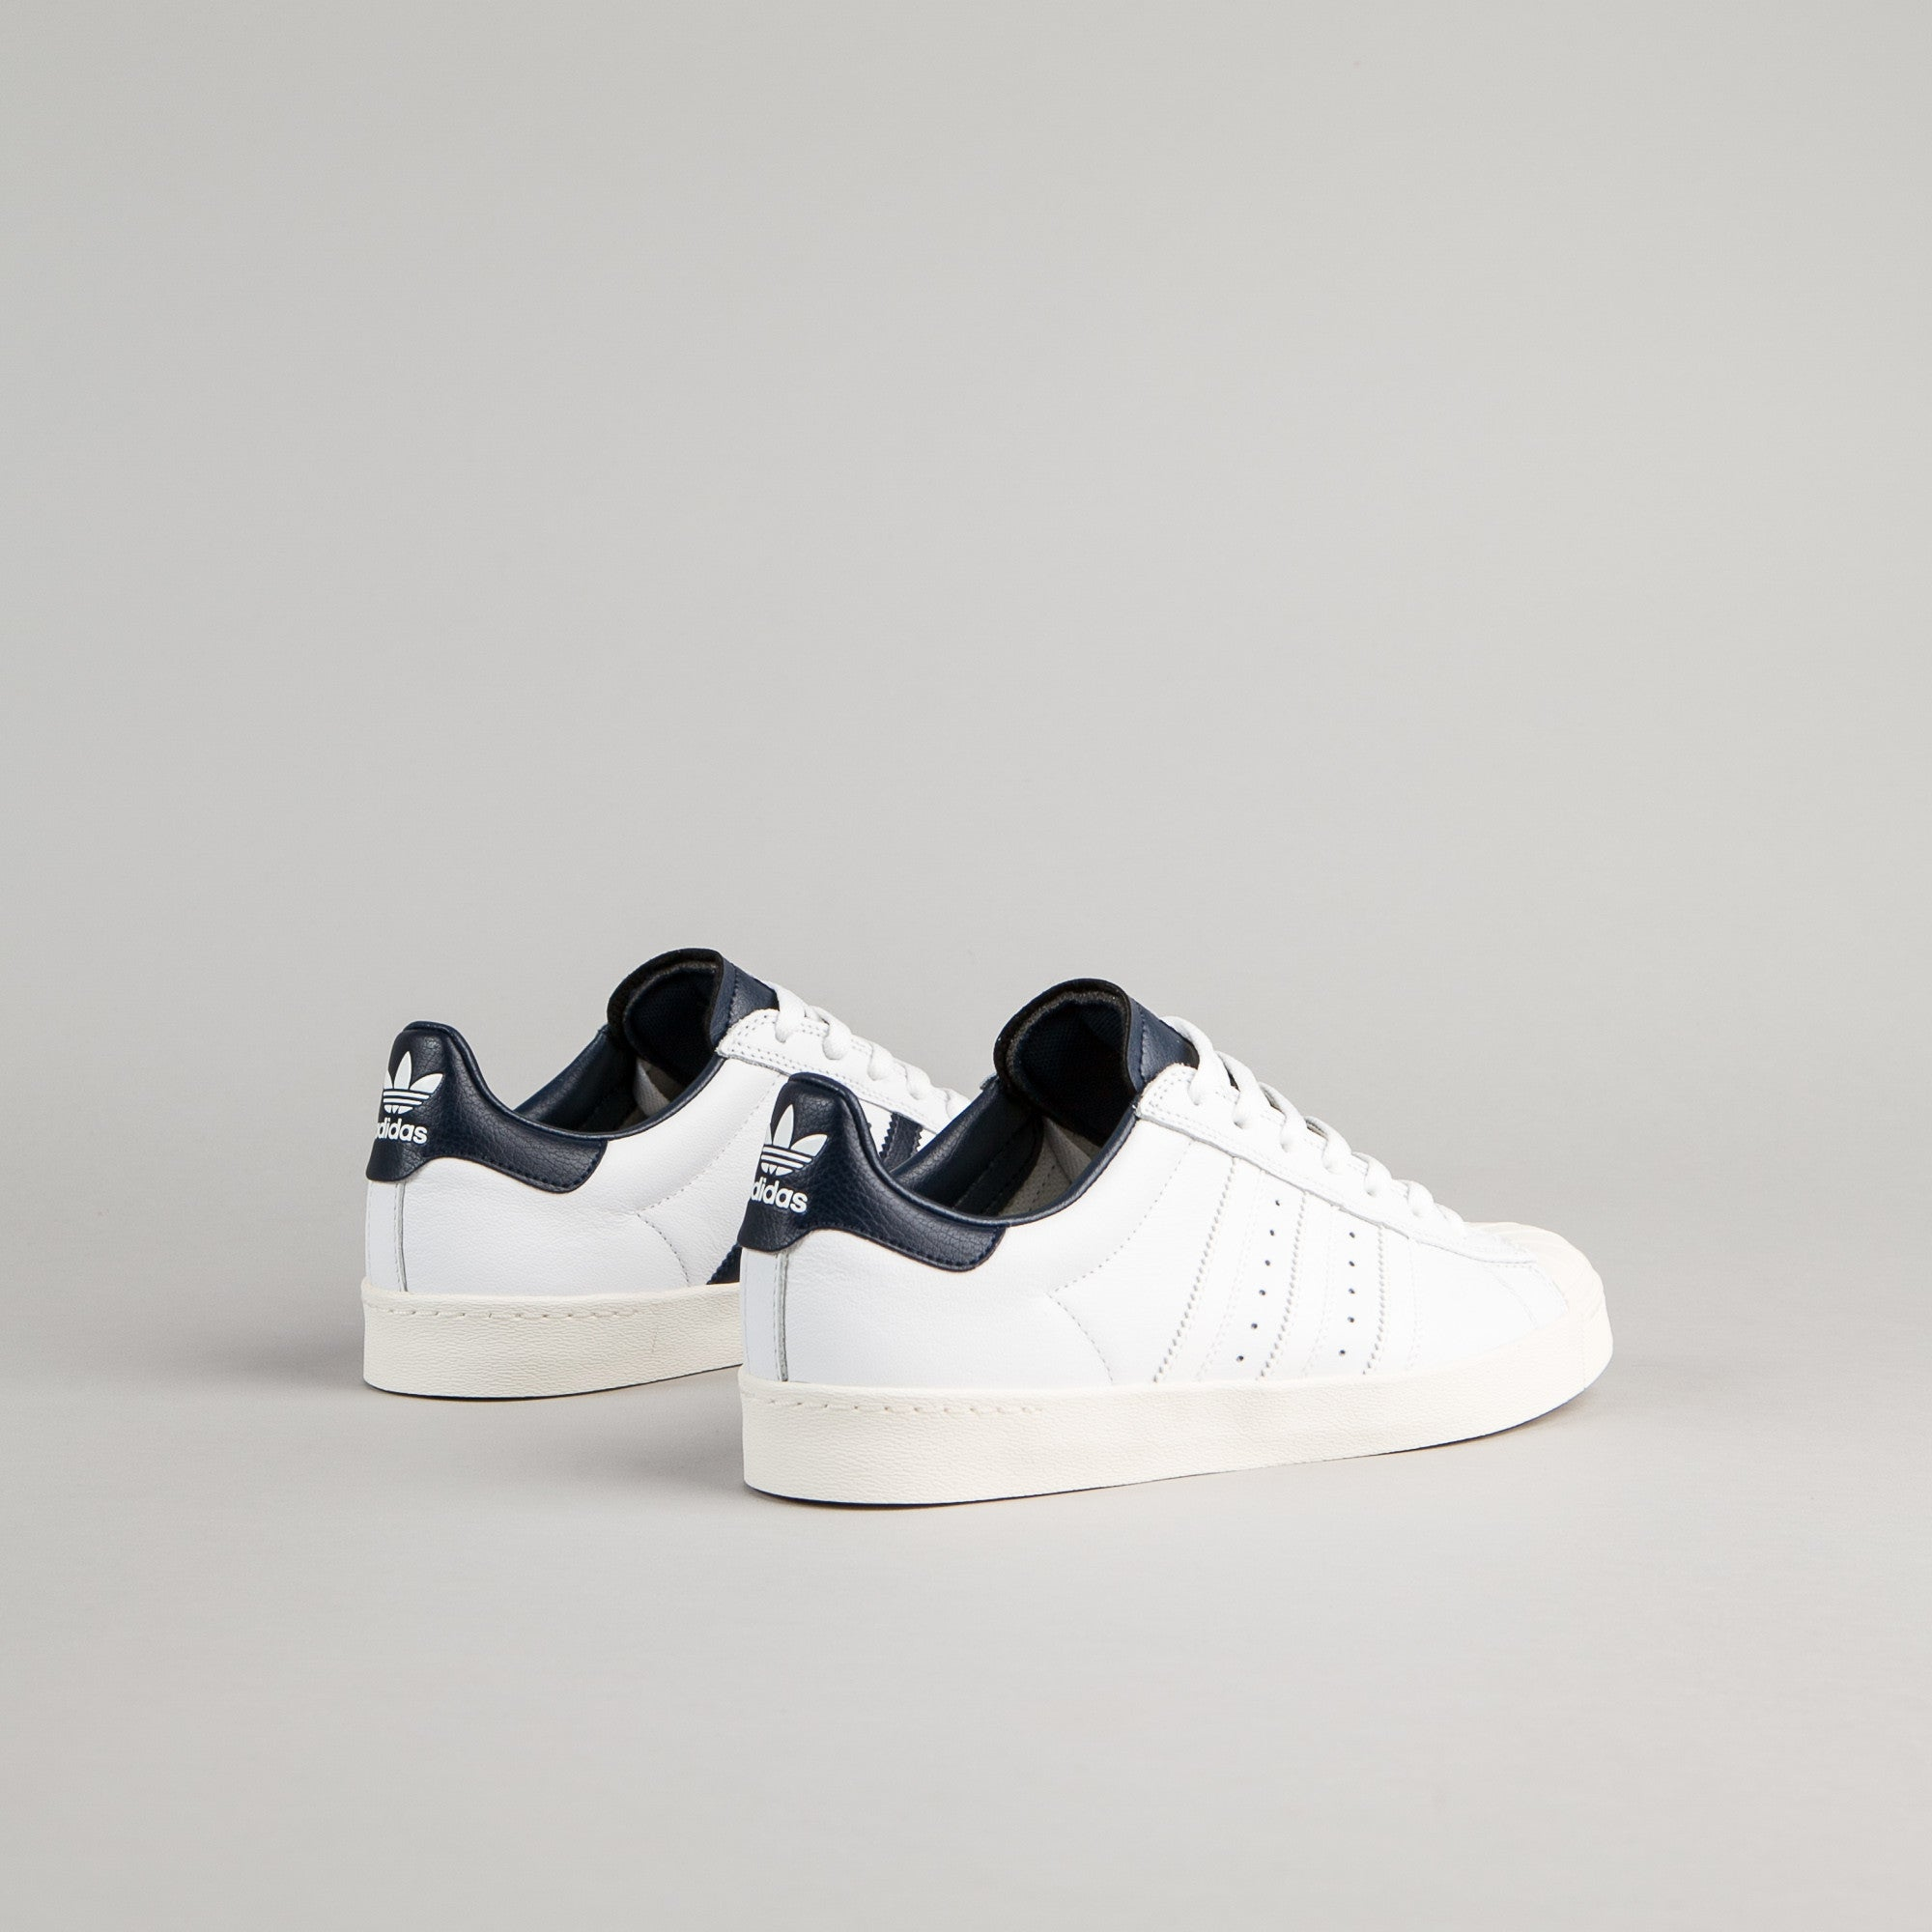 timeless design 1fc38 f7b59 BAPE x NEIGHBORHOOD adidas Superstar Boost Drops on February